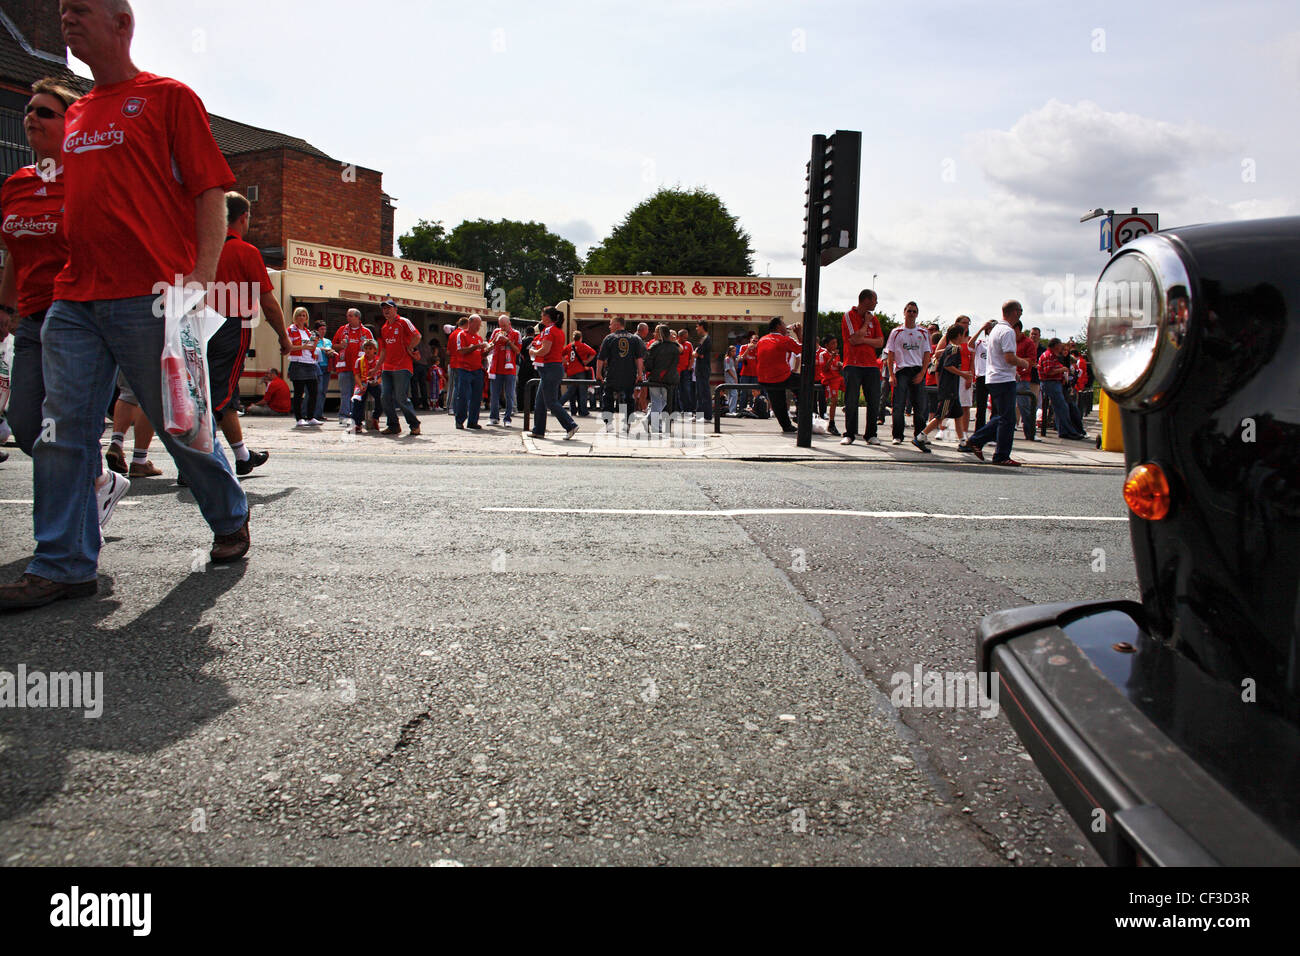 Liverpool football fans and burger vans on Anfield Road on a match day before kick off. - Stock Image